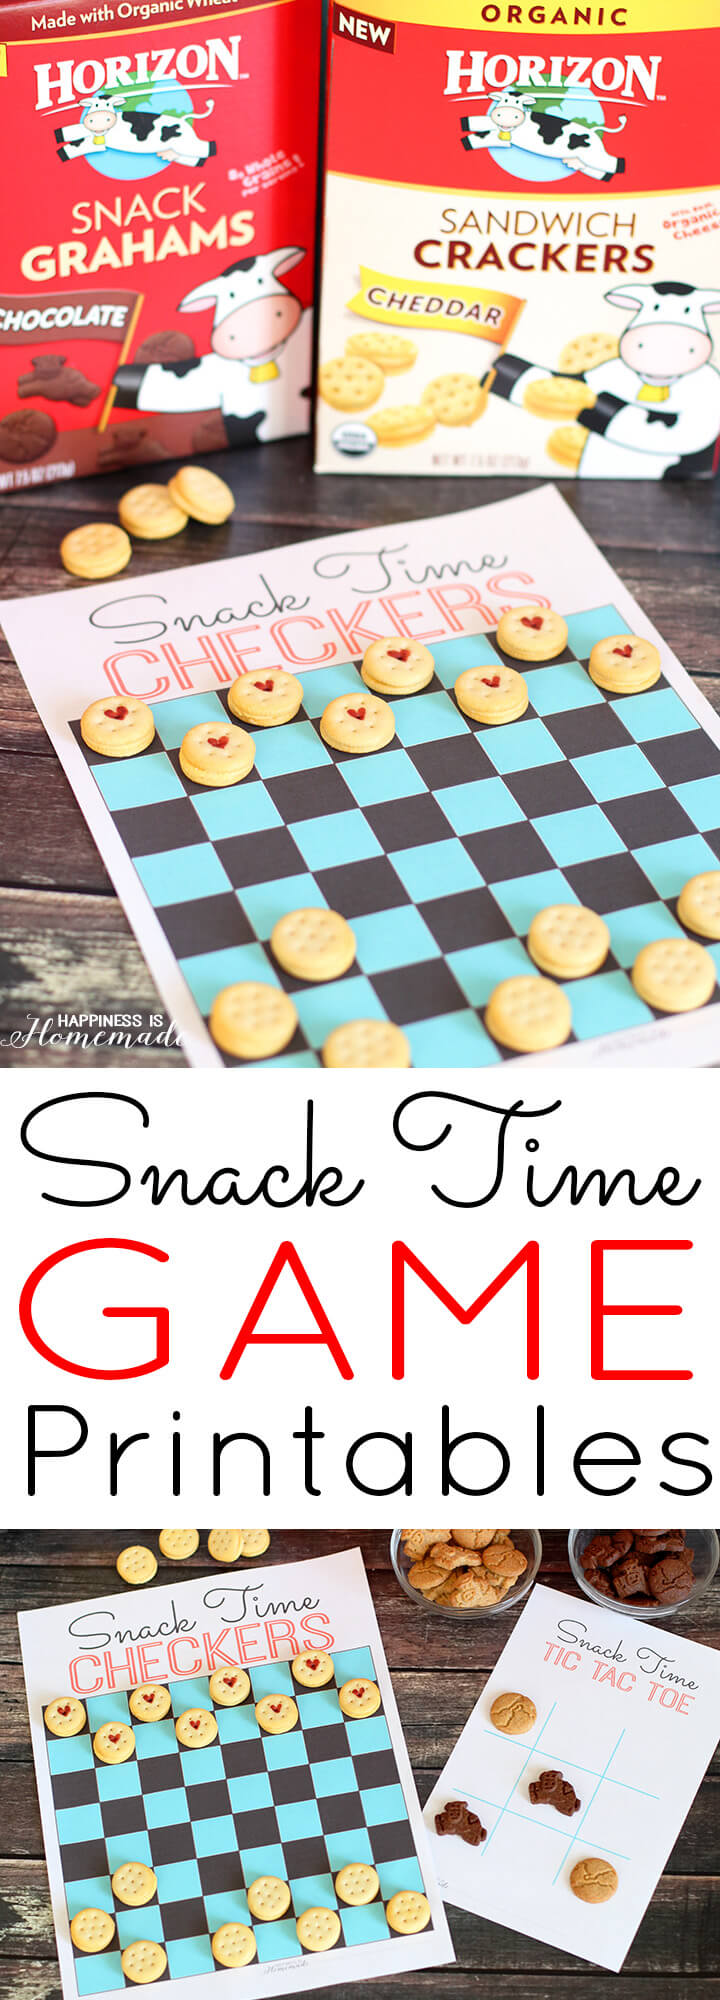 Snack Time Game Printables